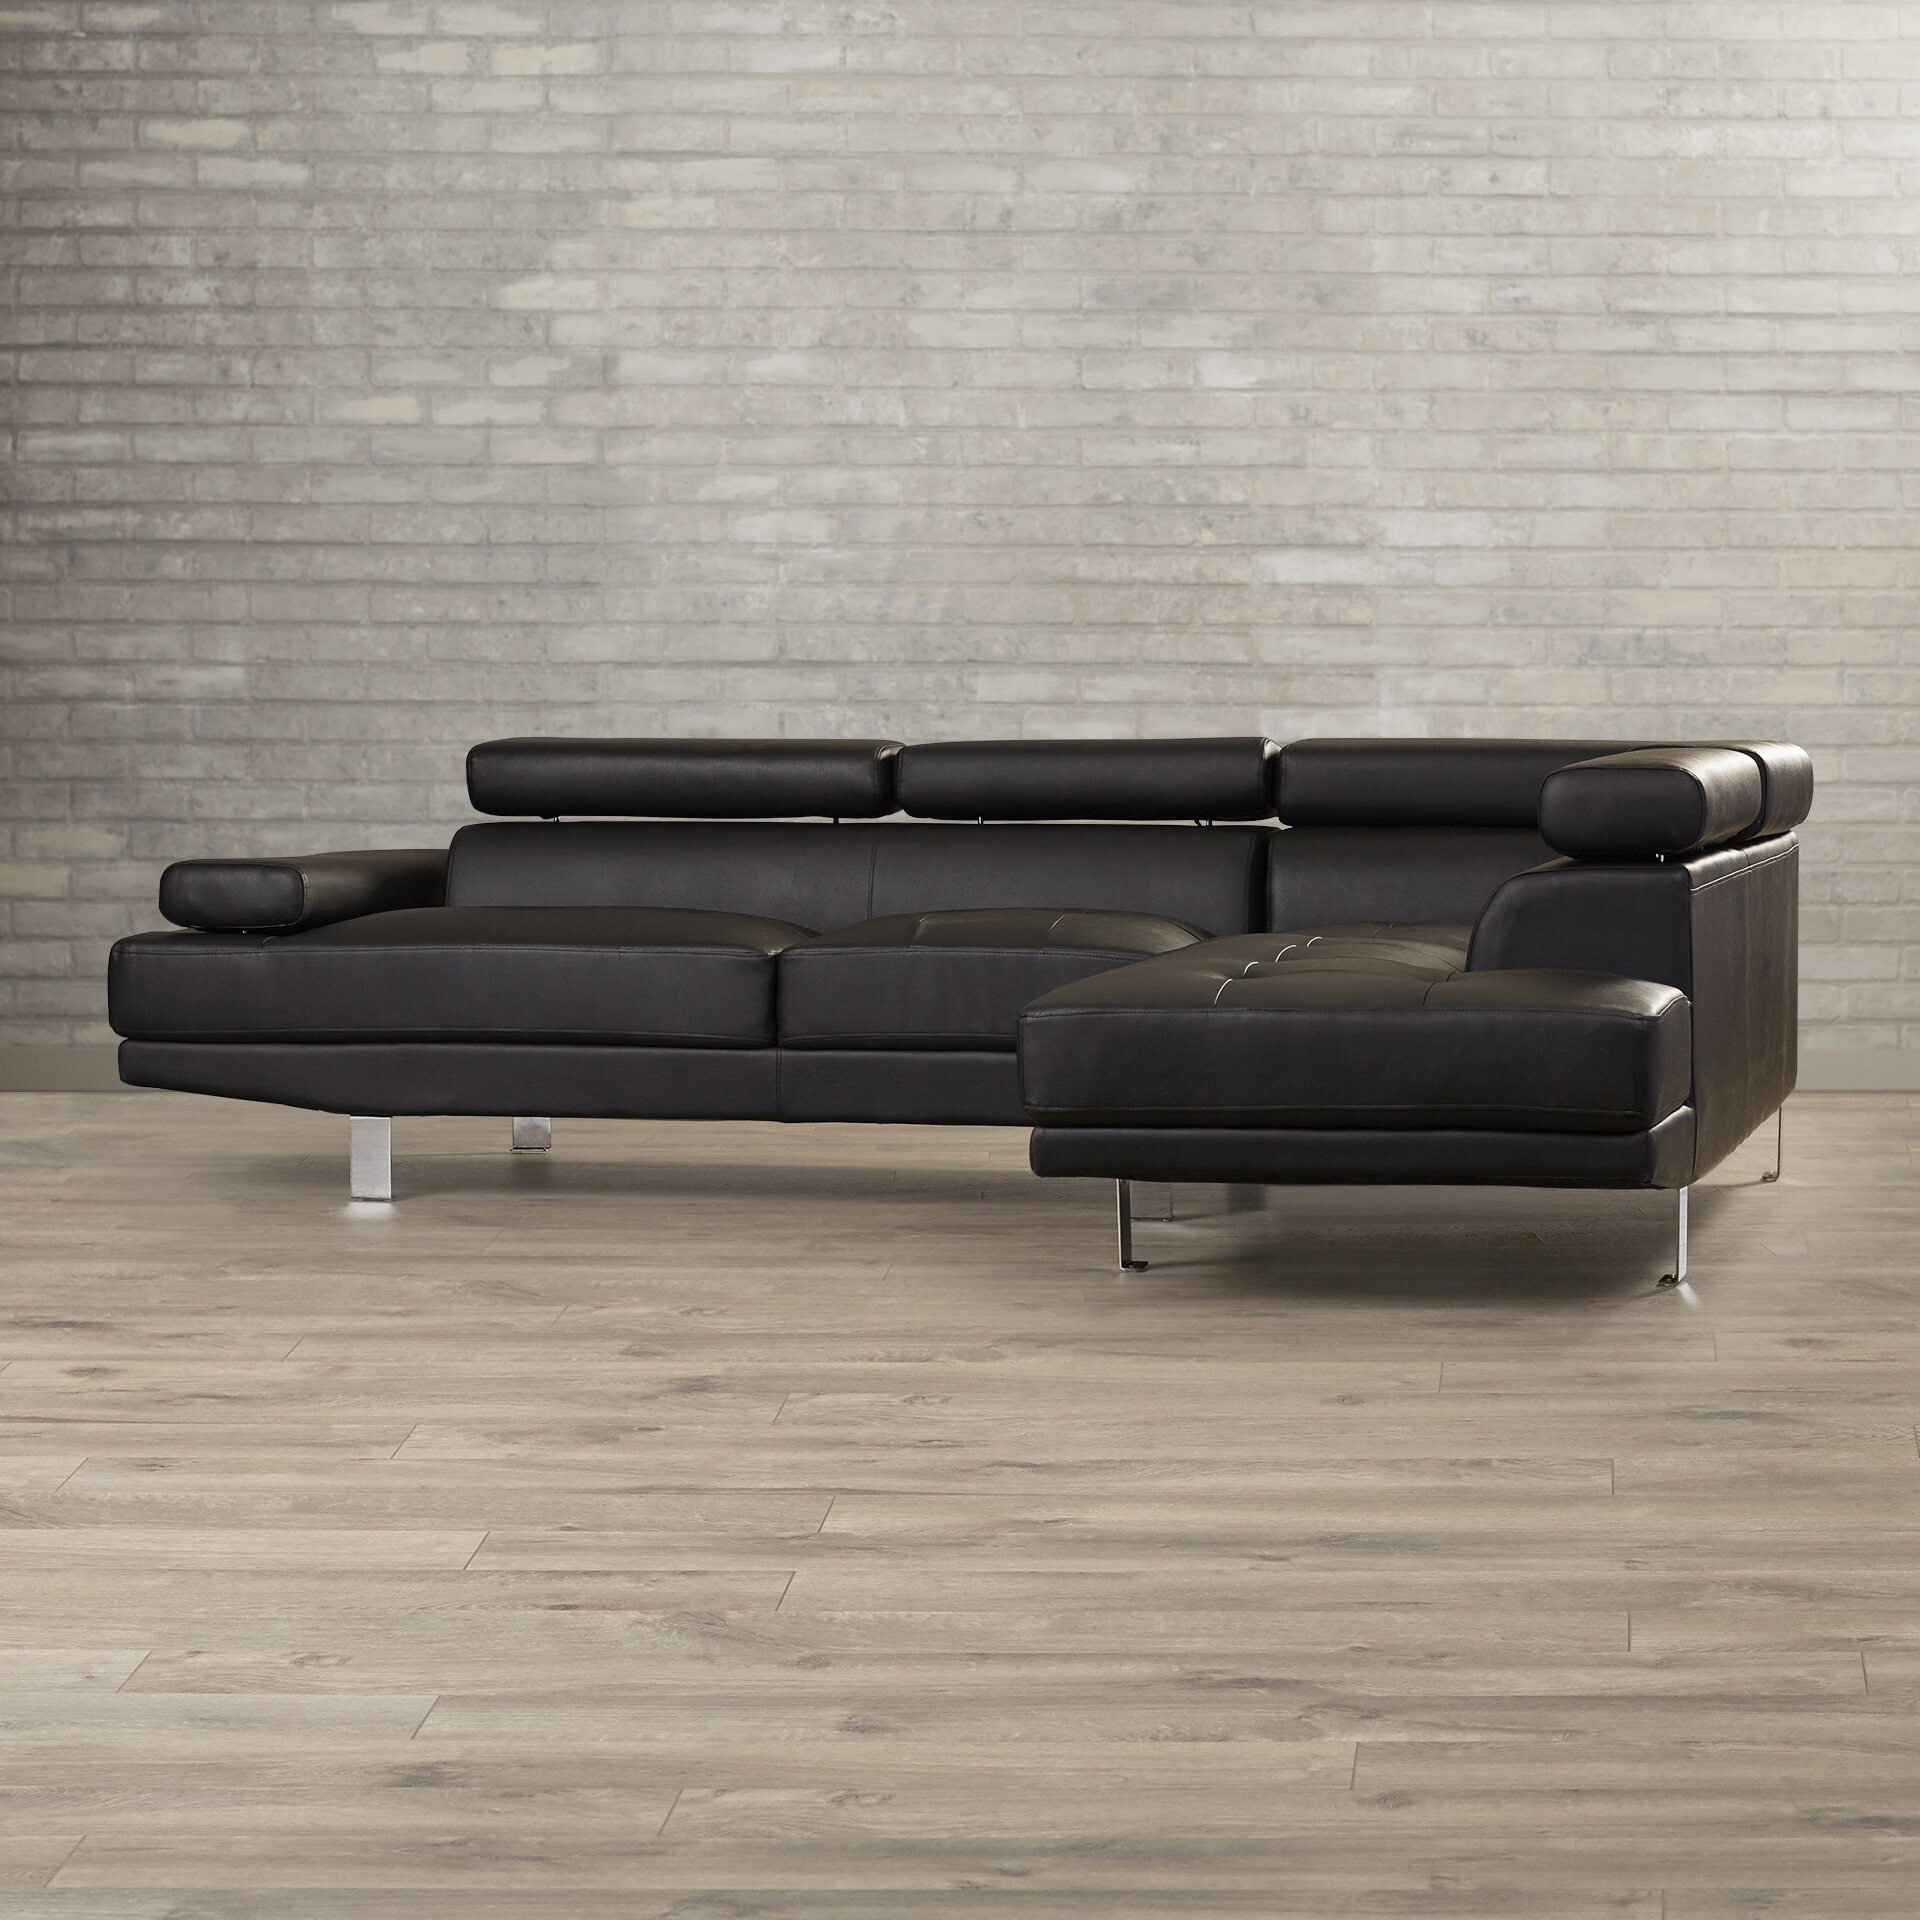 Brayden studio armadale right hand facing sectional amp reviews